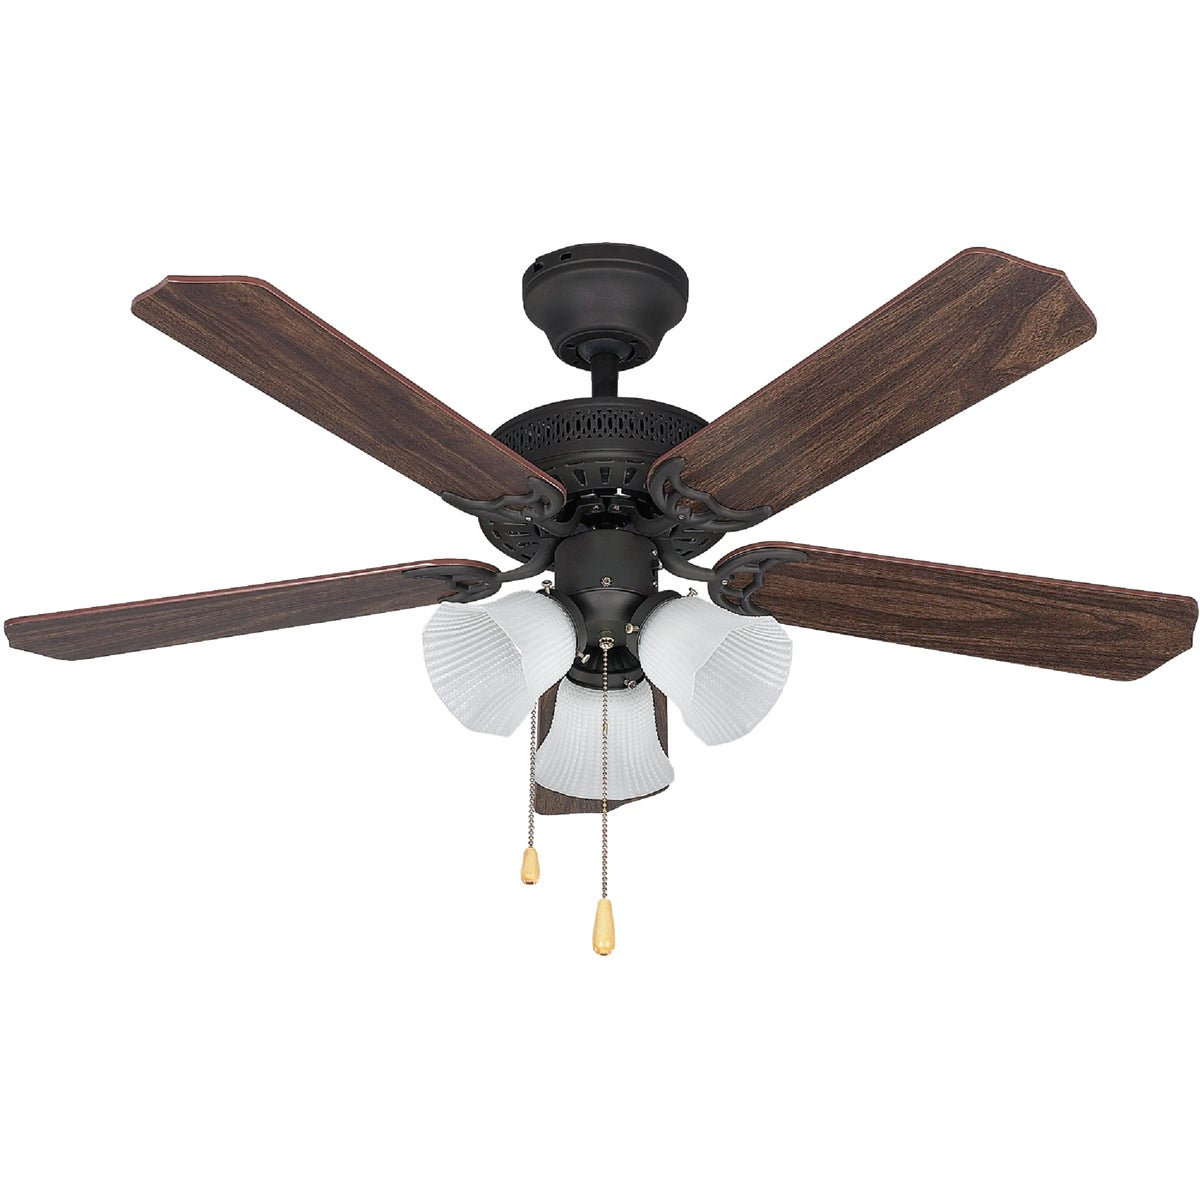 "42"" OIL BRZ CEILING FAN"